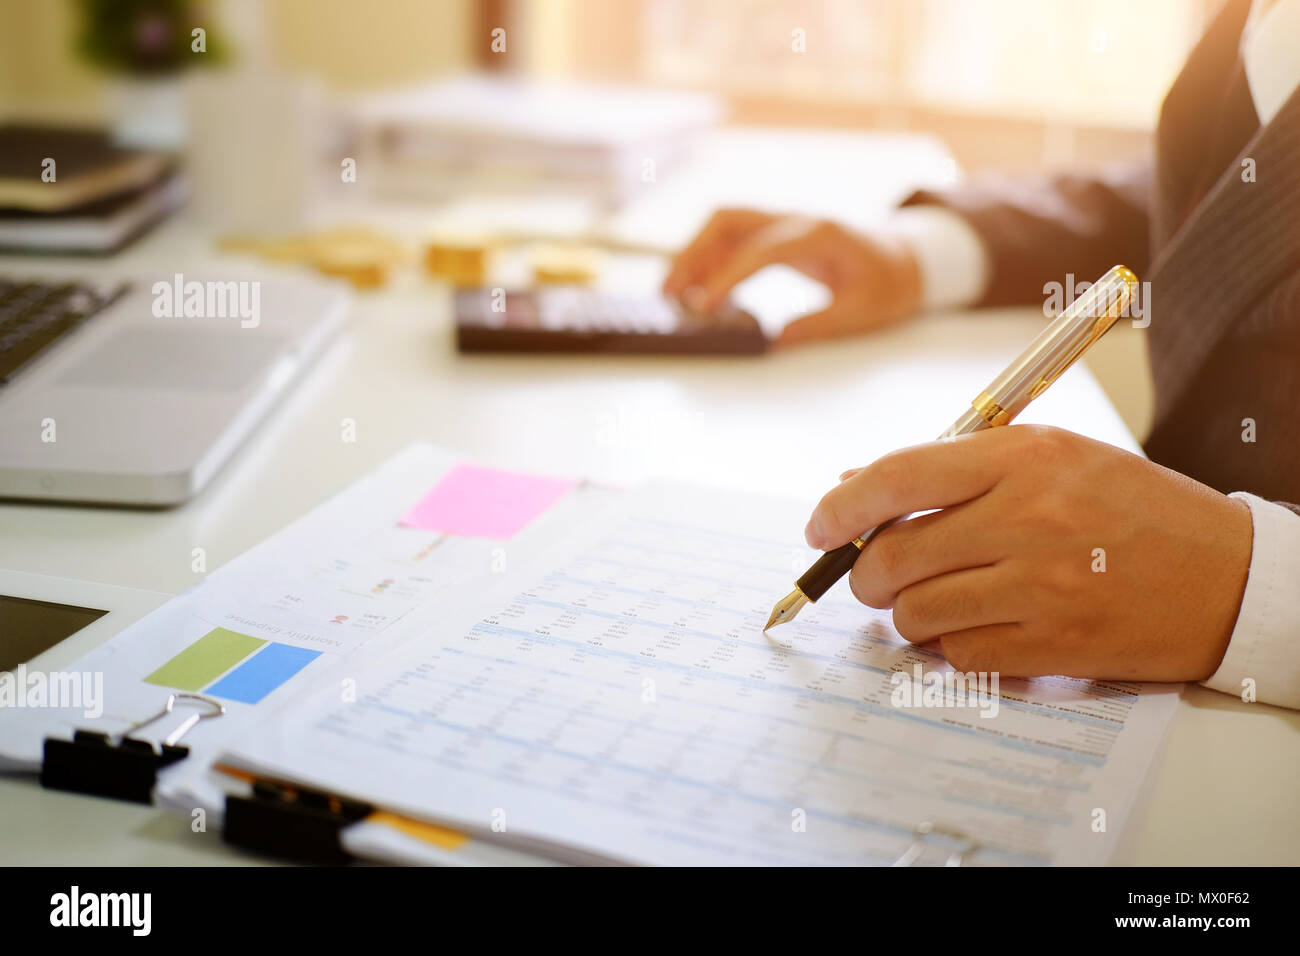 Certified public accountant, Man working on spreadsheet document financial data. - Stock Image